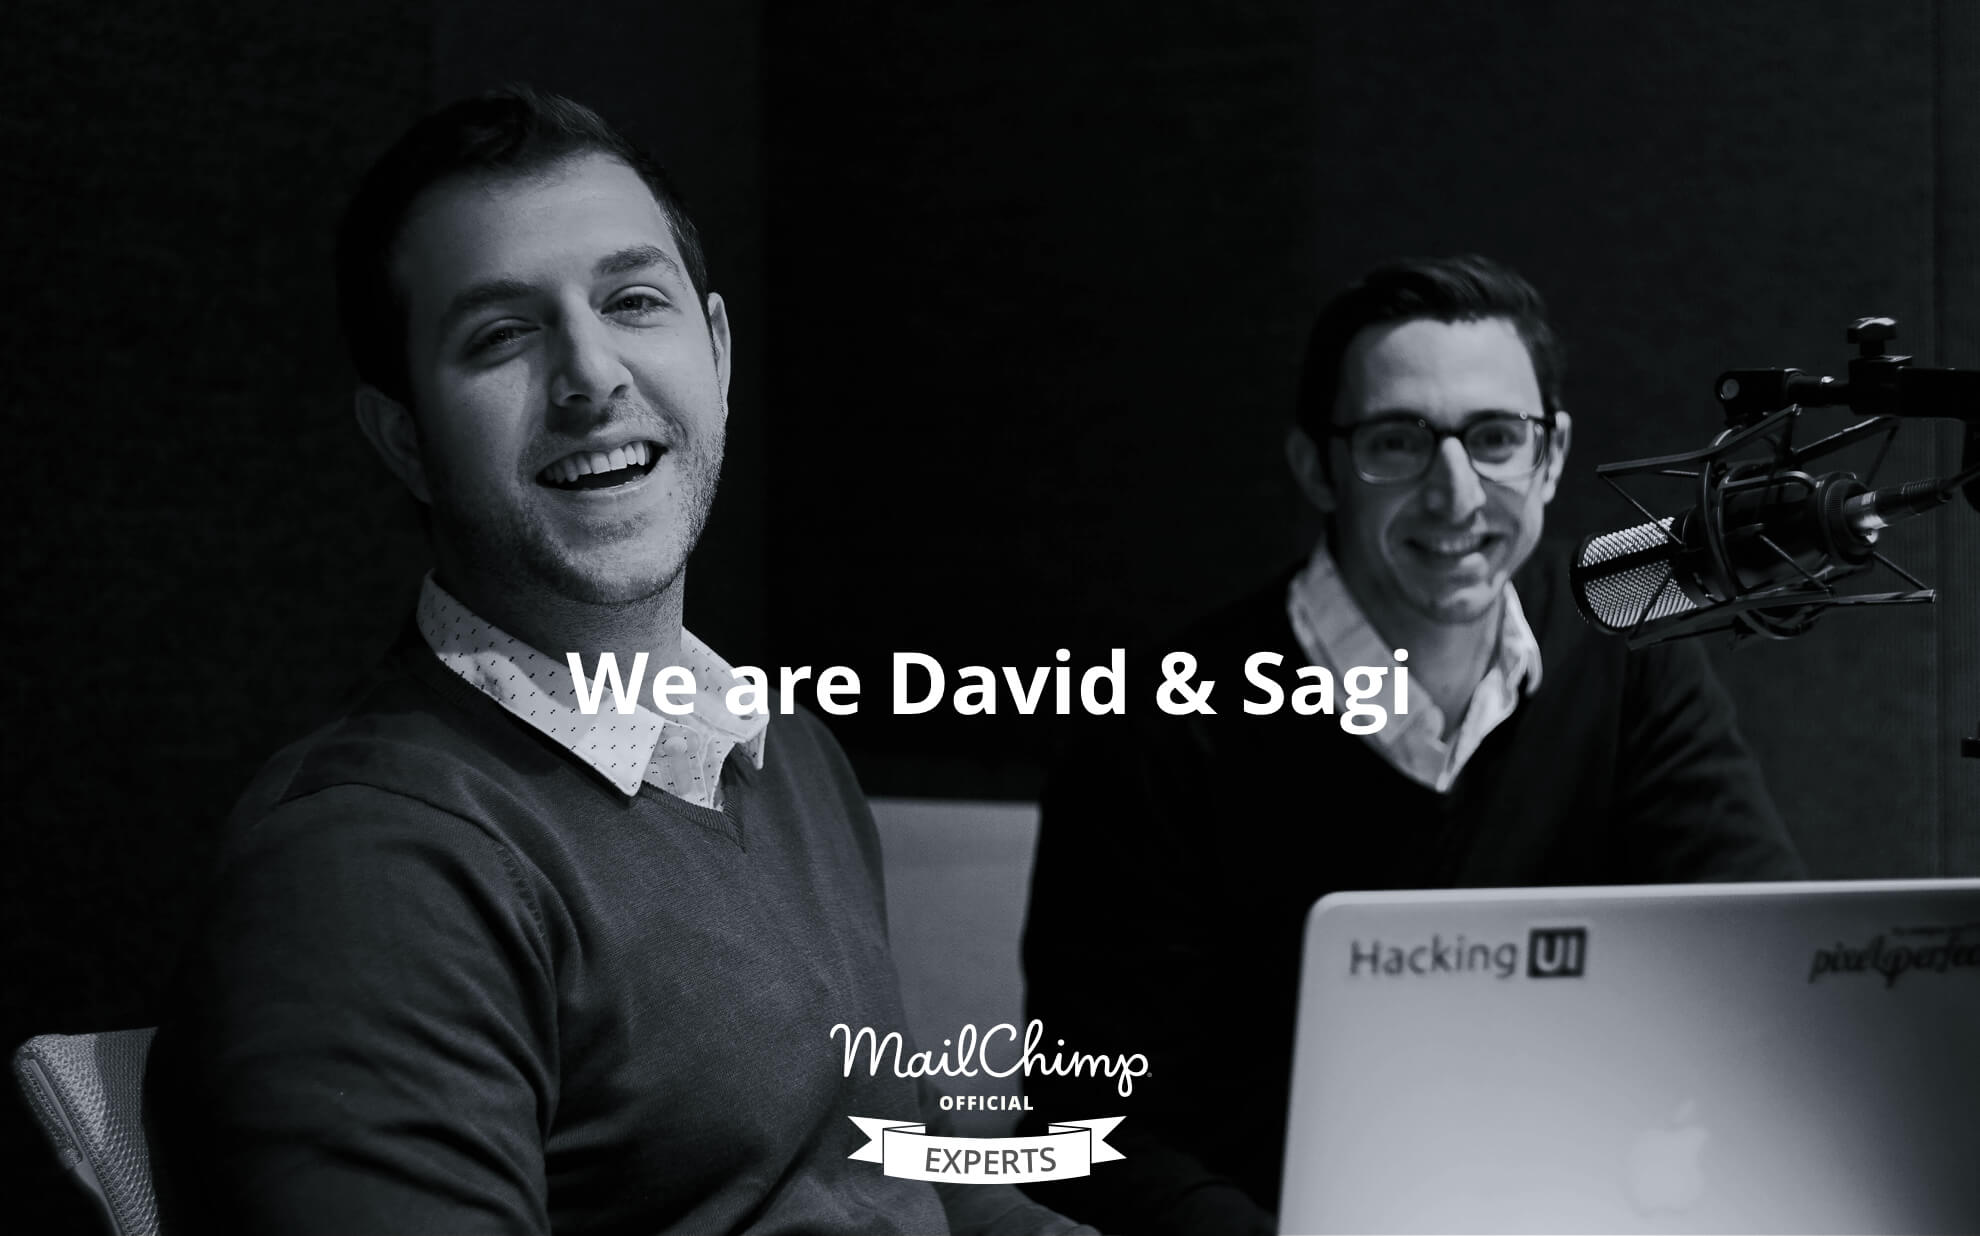 We are David and Sagi